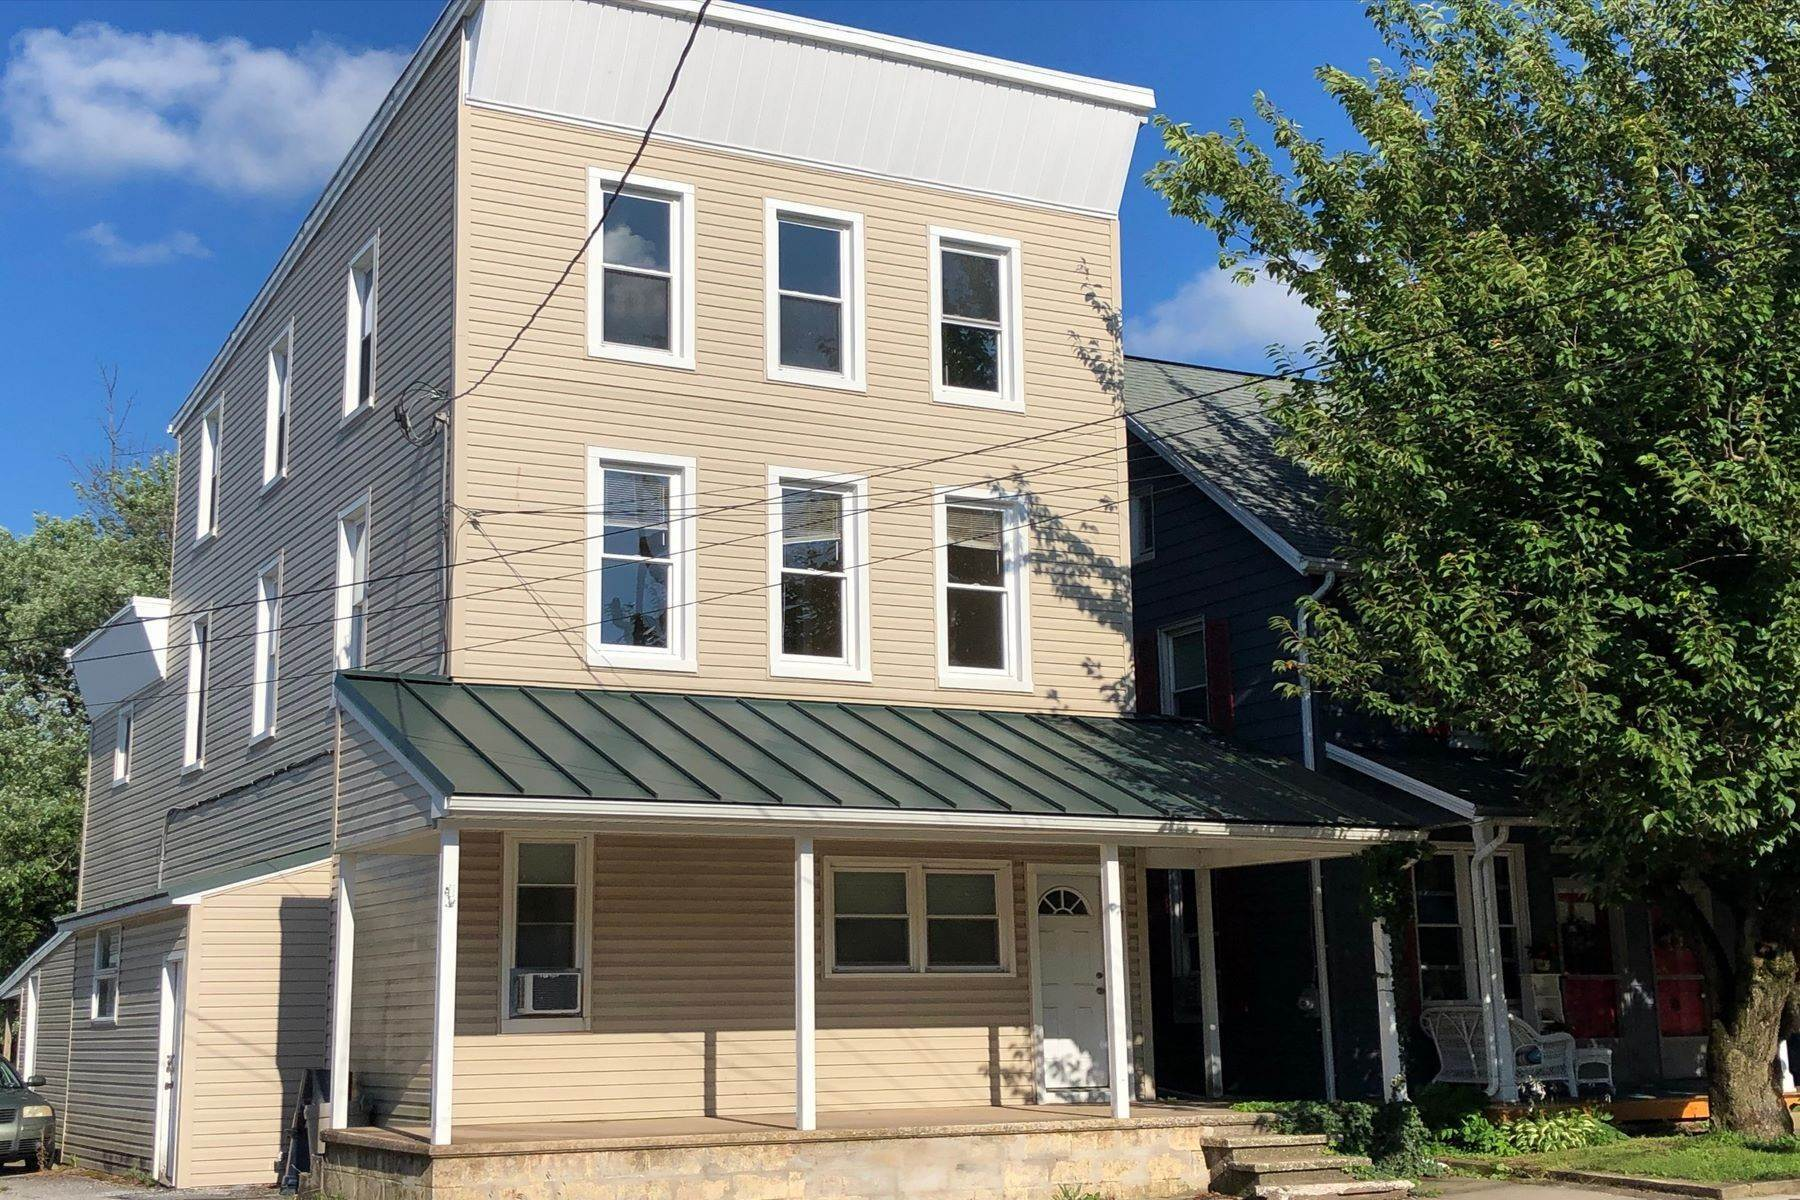 Multi-Family Homes for Sale at Stewartstown Three Unit Investment Opportunity 7 Main Street Stewartstown, Pennsylvania 17363 United States